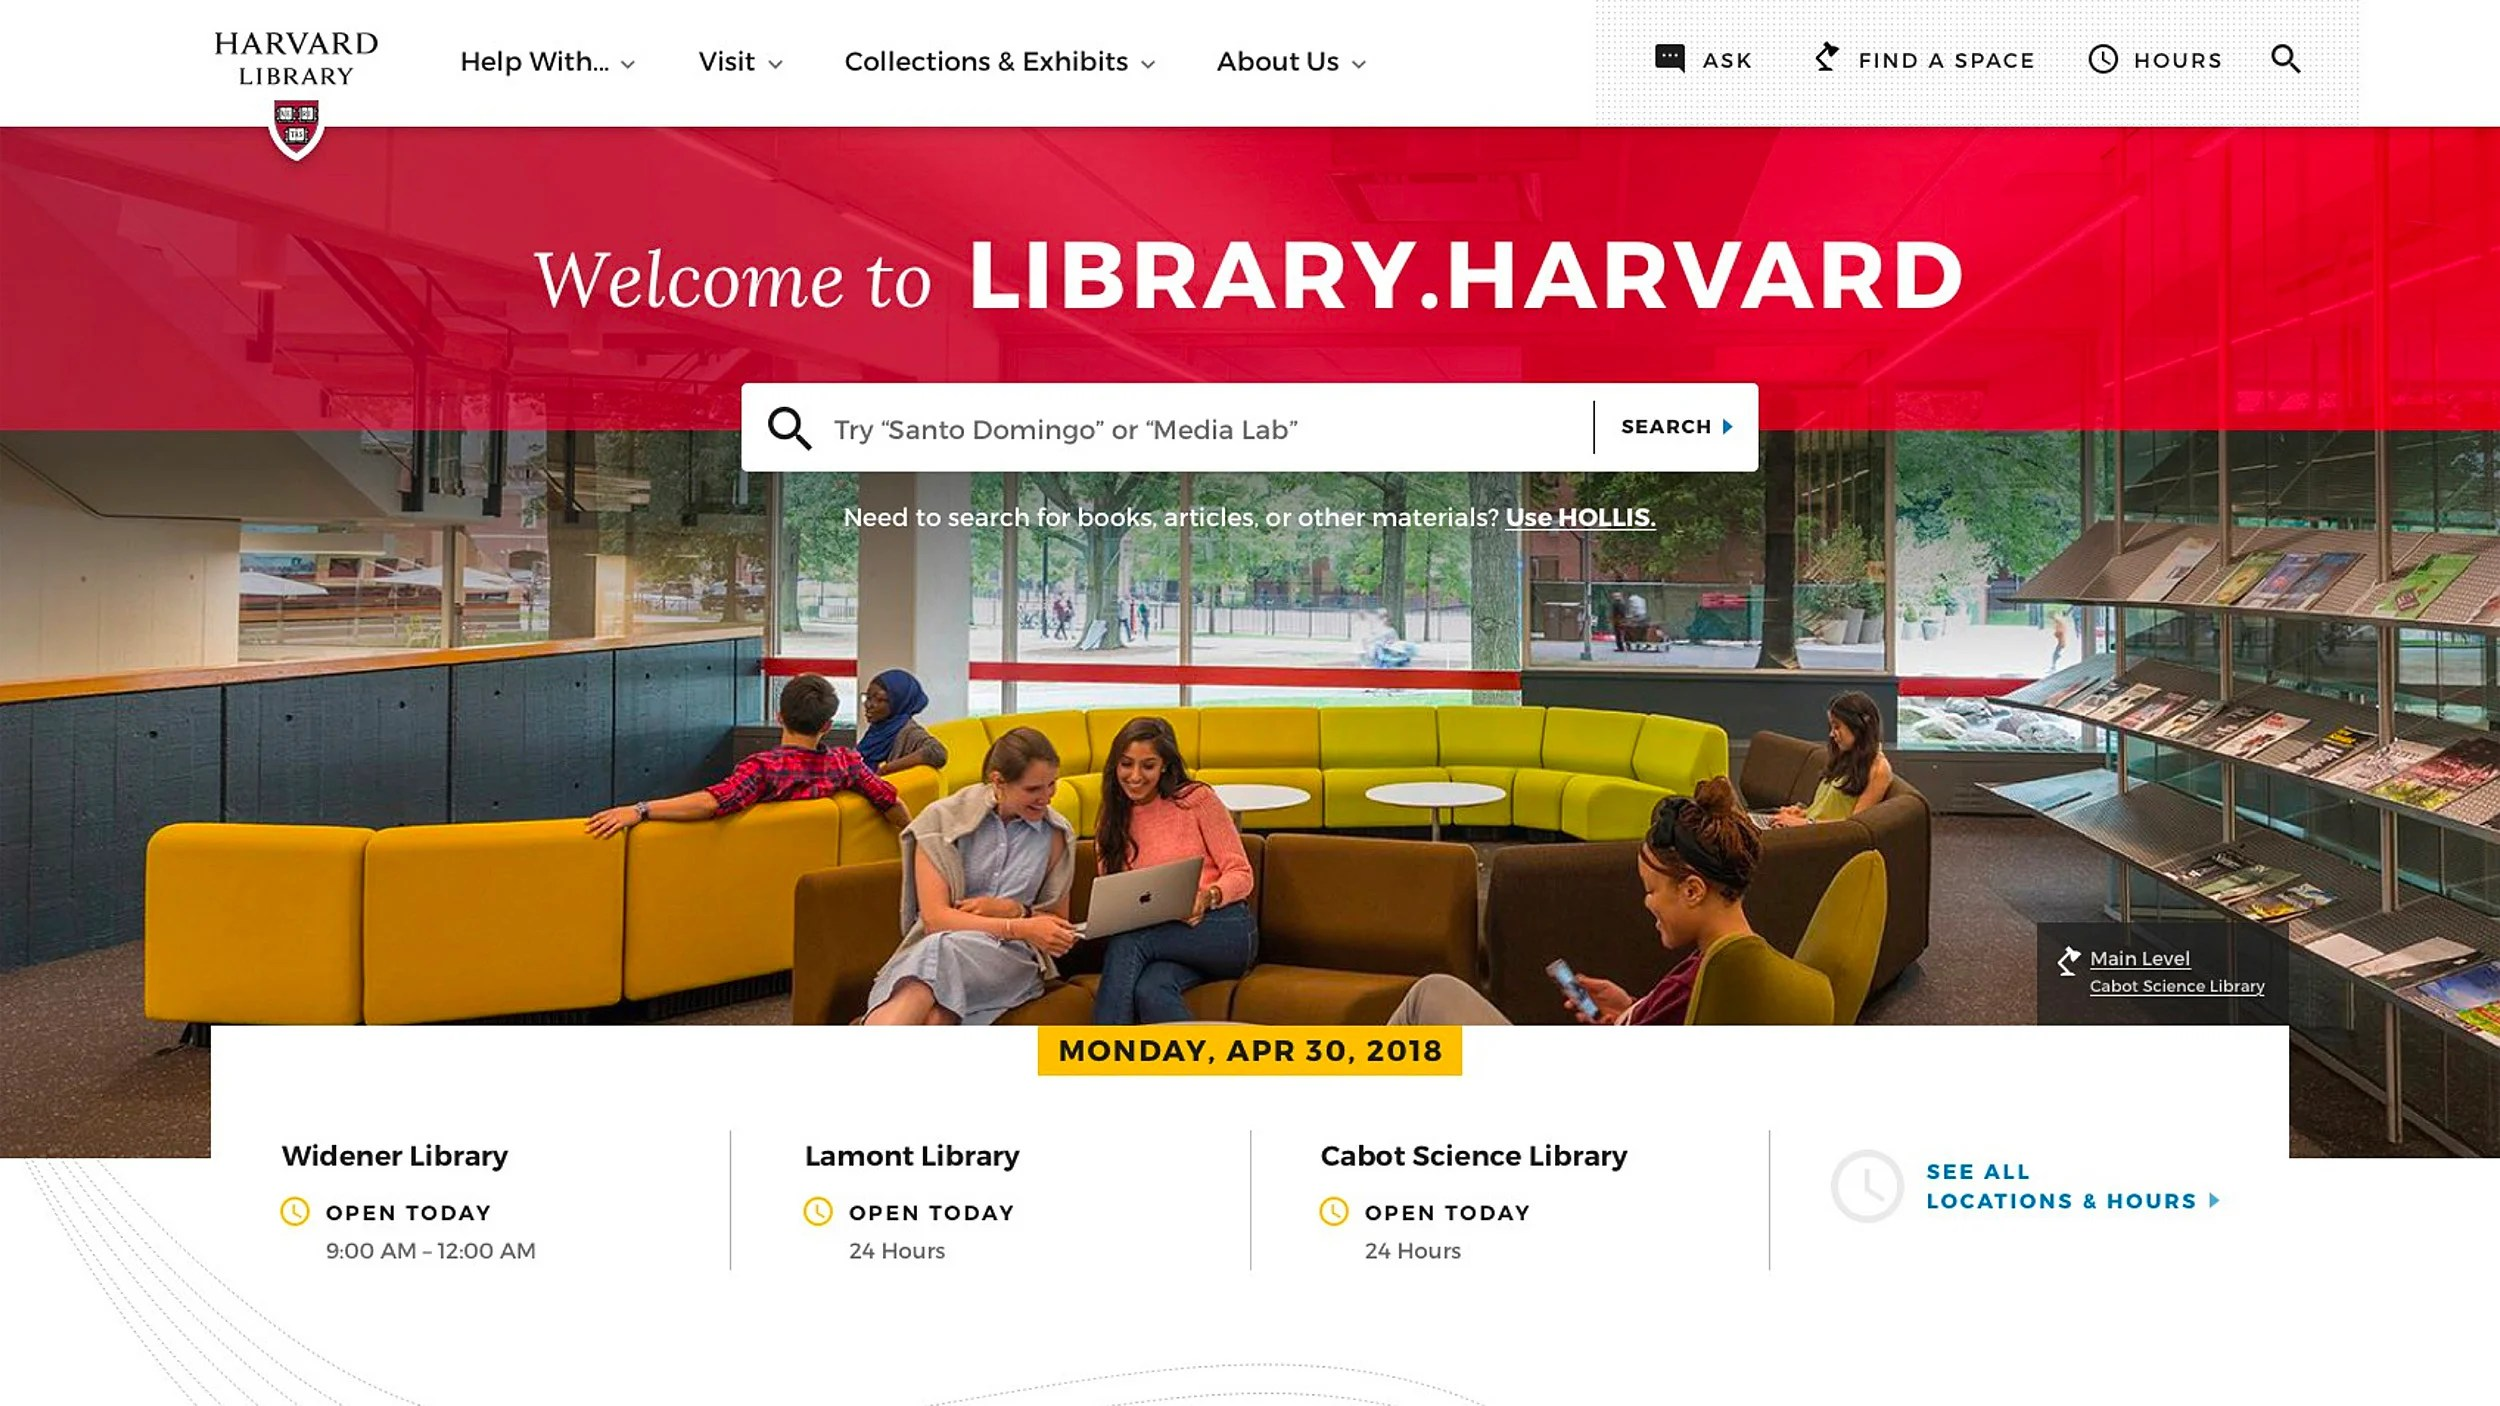 New library website provides digital front door to Harvard resources  sc 1 st  Harvard Gazette - Harvard University & Campus \u0026 Community \u2013 Harvard Gazette